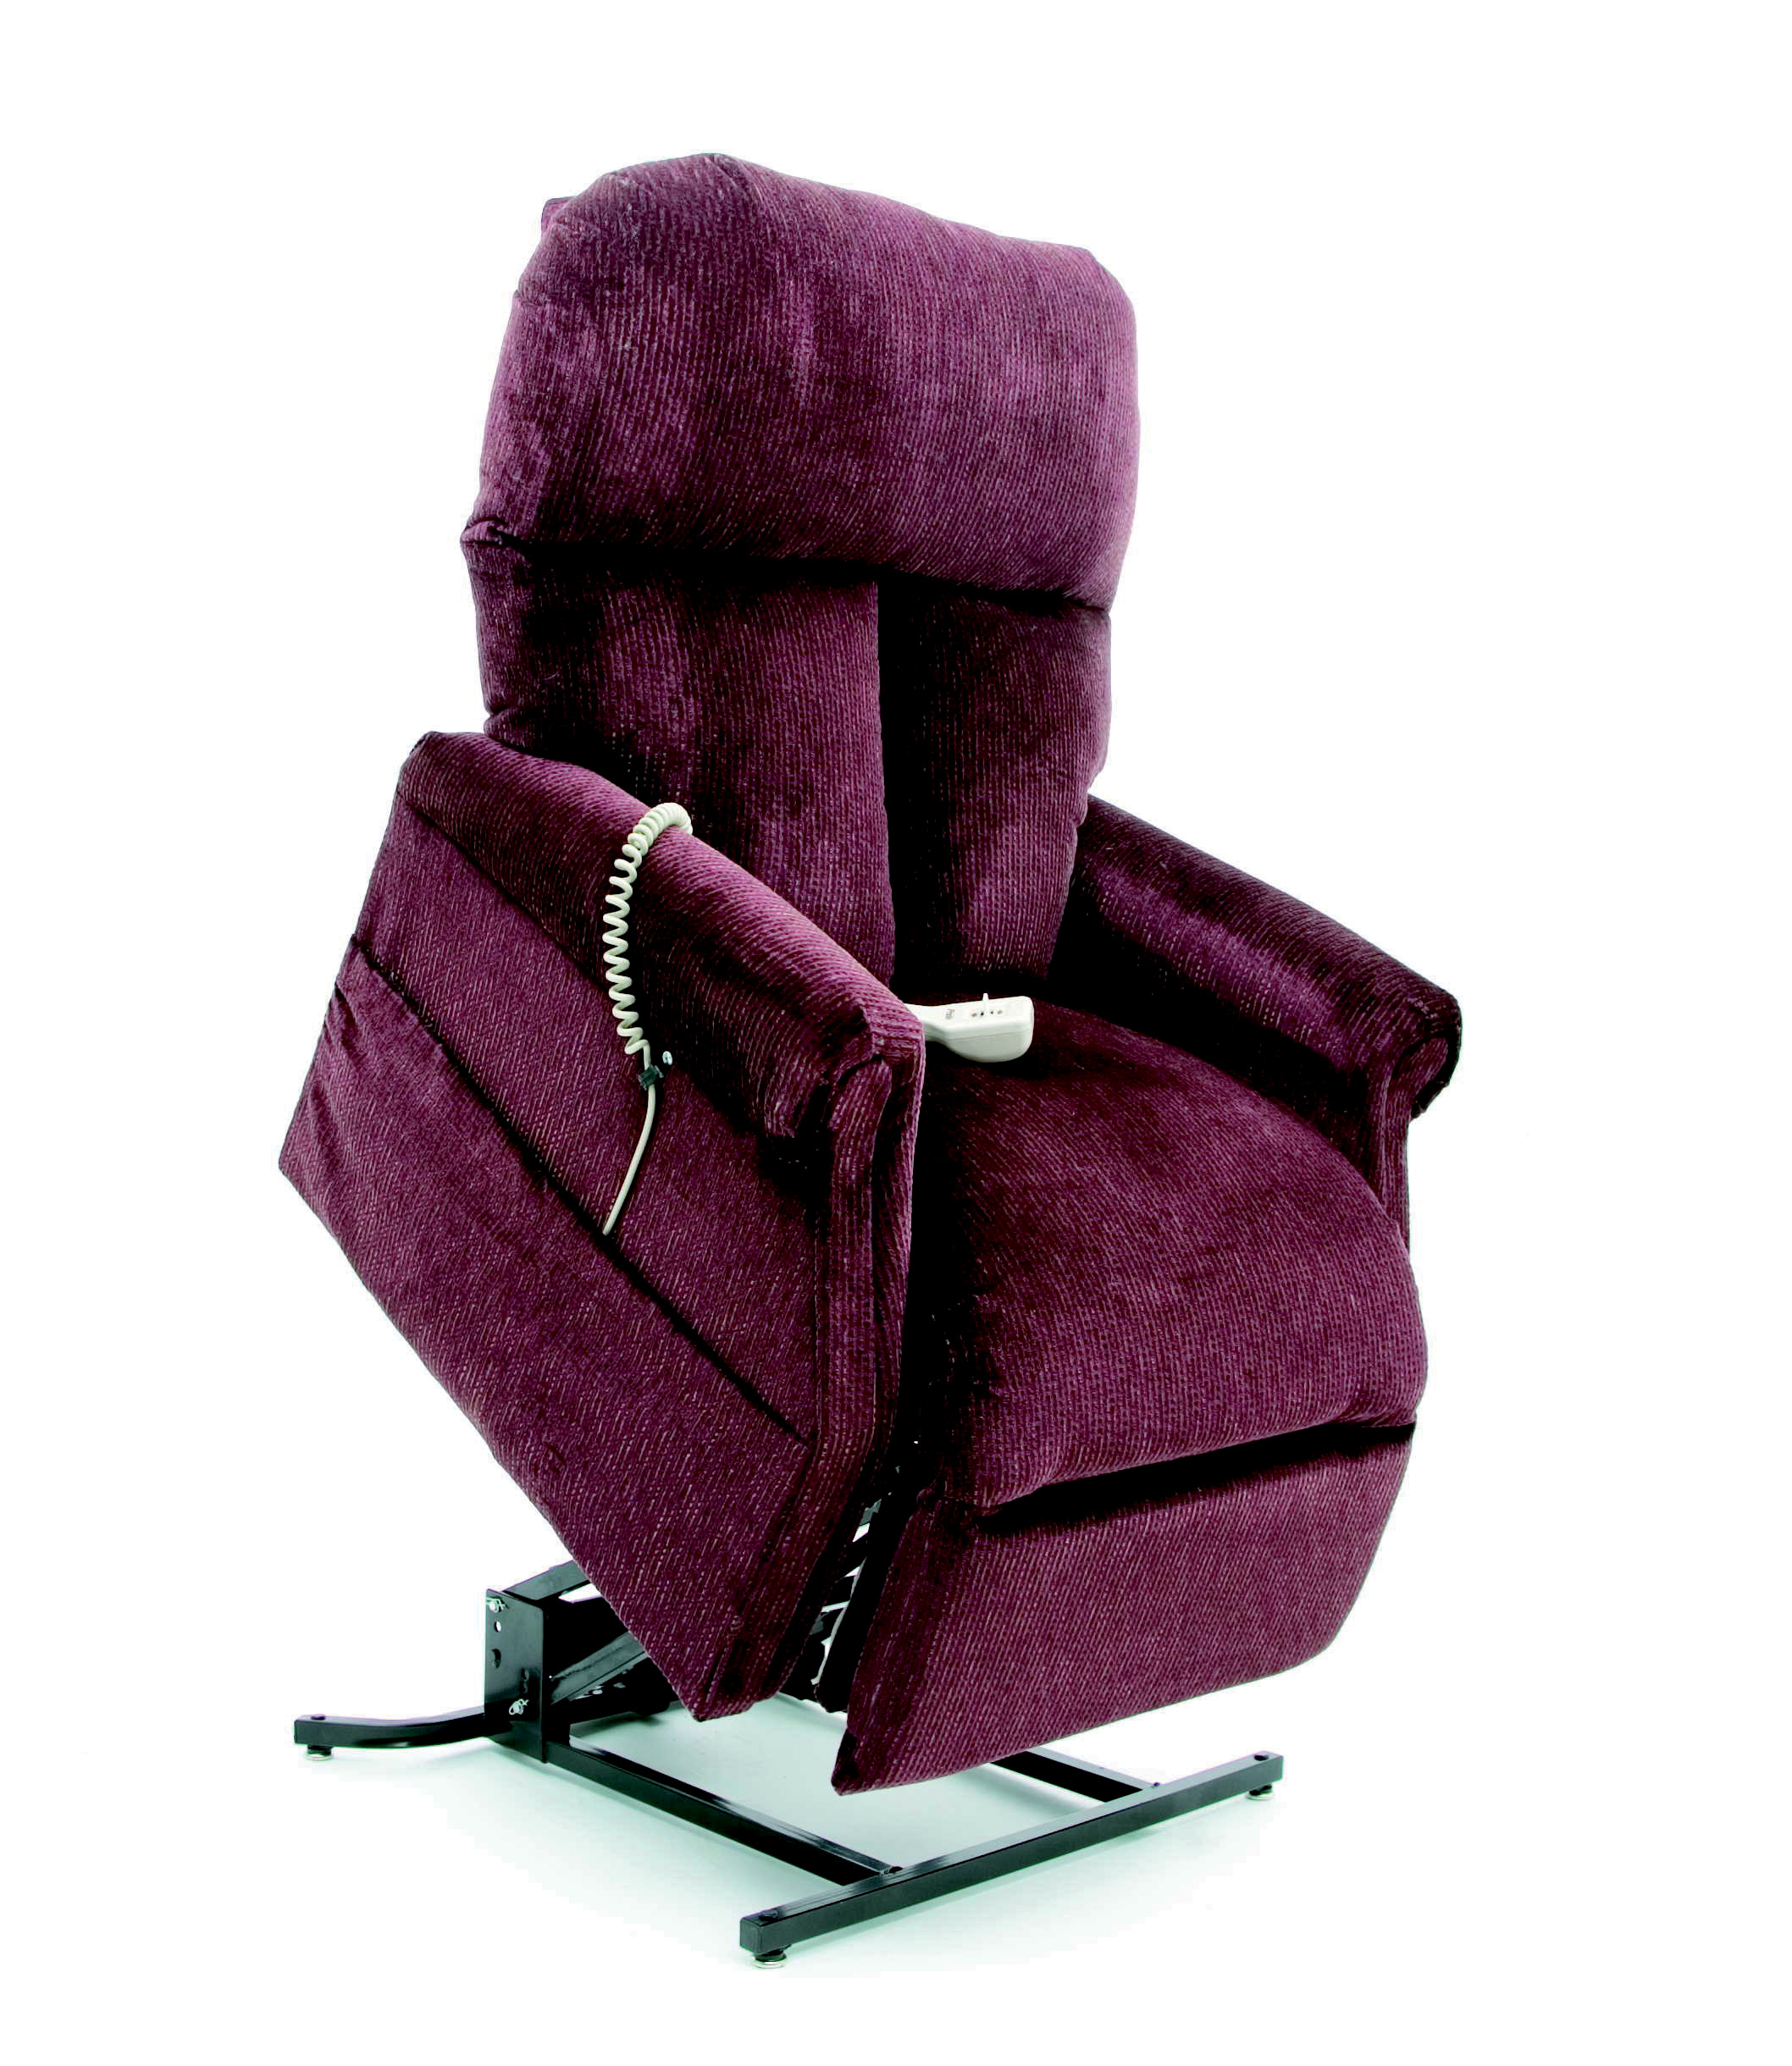 comfortable power lift recliners in purple for your healthcare equipment